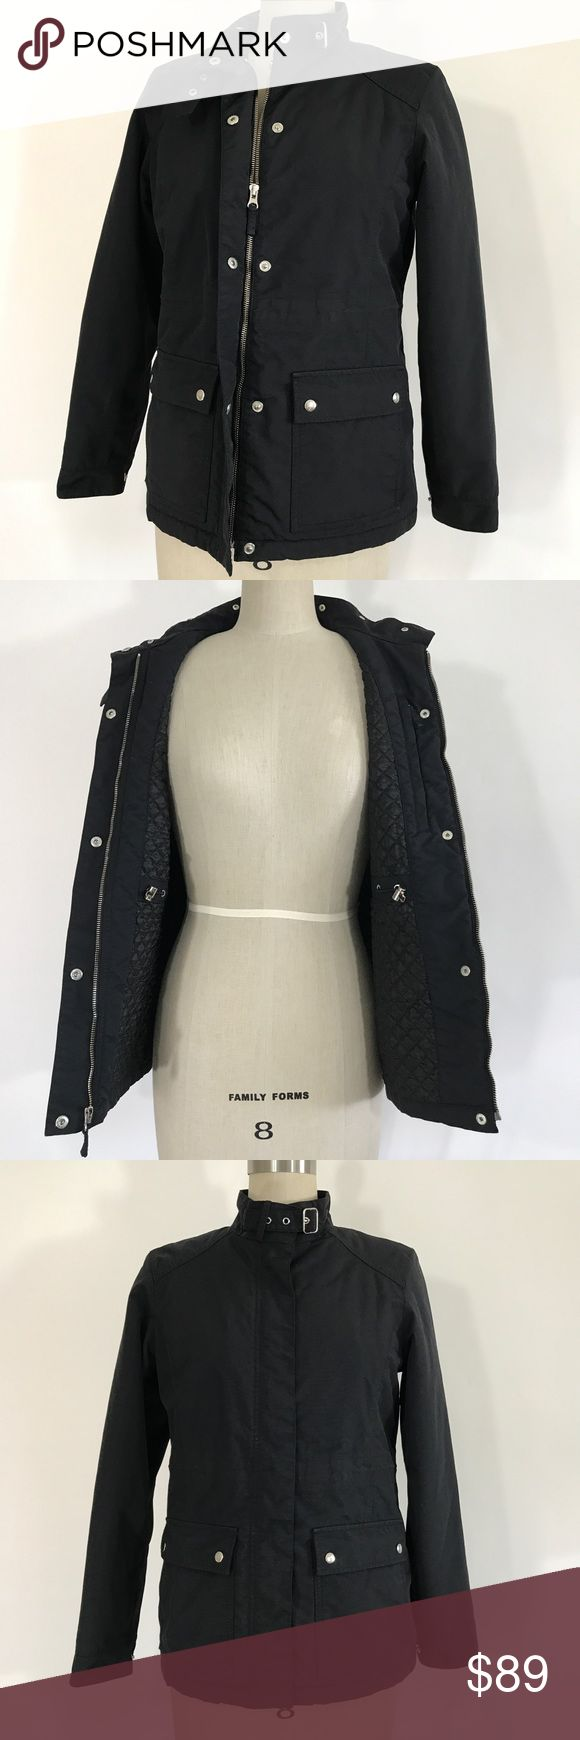 LANDS' END utility jacket size XS 4-6 Lands end black utility jacket size XS  Ⓜ️size XS (great in size 4-6) Ⓜ️shoulder 15 Ⓜ️Bust 38 Ⓜ️Waist 36 (hidden inside drawstring)  Ⓜ️Length 26 Ⓜ️Sleeves 24  New no tags, black utility jacket, quilted inside, inside ajustable Waist drawstring, inside zip up pocket, button and zip up front, button up neck with buckle, button up sleeves, 2 outside pockets, Retail average $199  🚫No Trading 🙅🏻 ✅Bundle and save  ✅🚭 ❗️Poshmark rules only‼️ Lands' End…